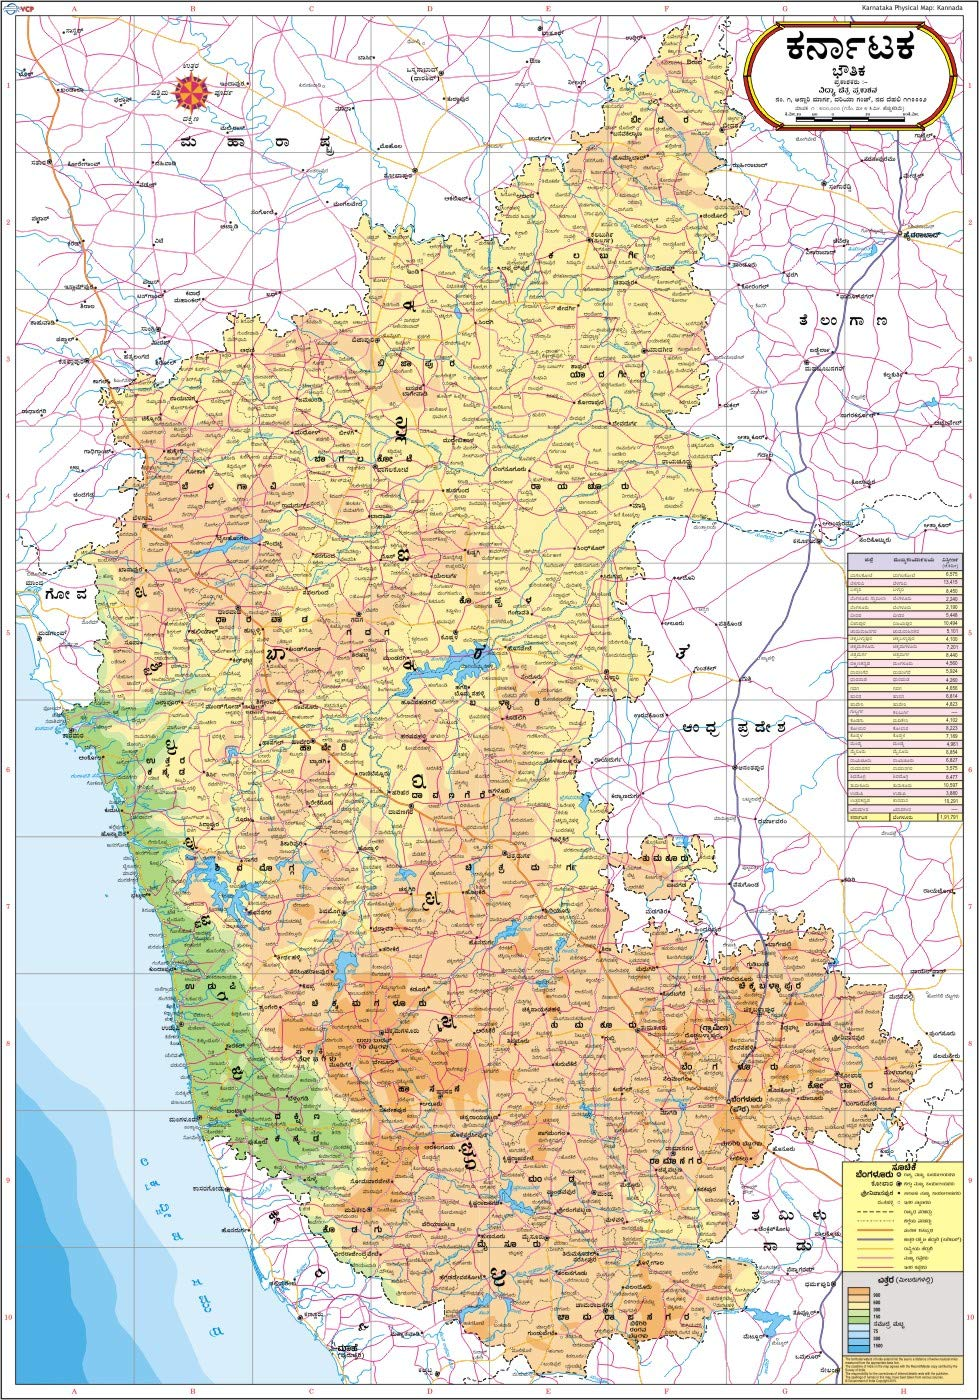 Buy Karnataka Map : Kannada Book Online at Low Prices in India ... on andhra pradesh map, sri lanka map, m.p. map, gujarat map, union territory map, maharashtra map, bangalore map, haryana map, telangana map, uttar pradesh map, west bengal map, tamilnadu map, uttarakhand map, kashmir map, kerala map, goa map, india map, delhi map, pondicherry map, rajasthan map,